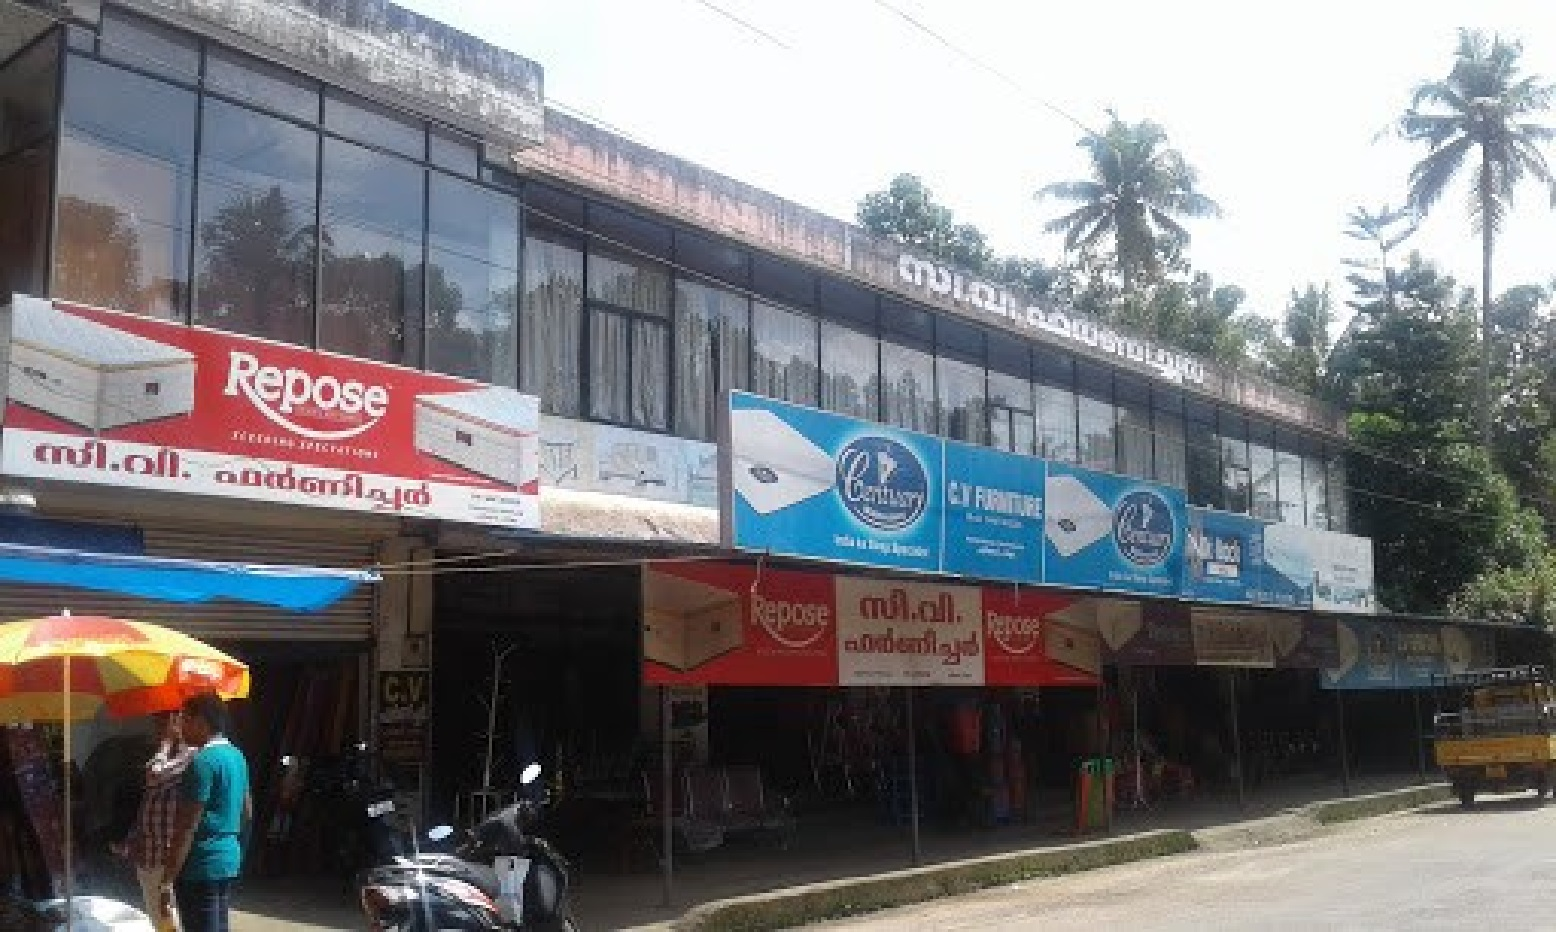 C.v. Furniture, FURNITURE SHOP,  service in Pandalam, Pathanamthitta